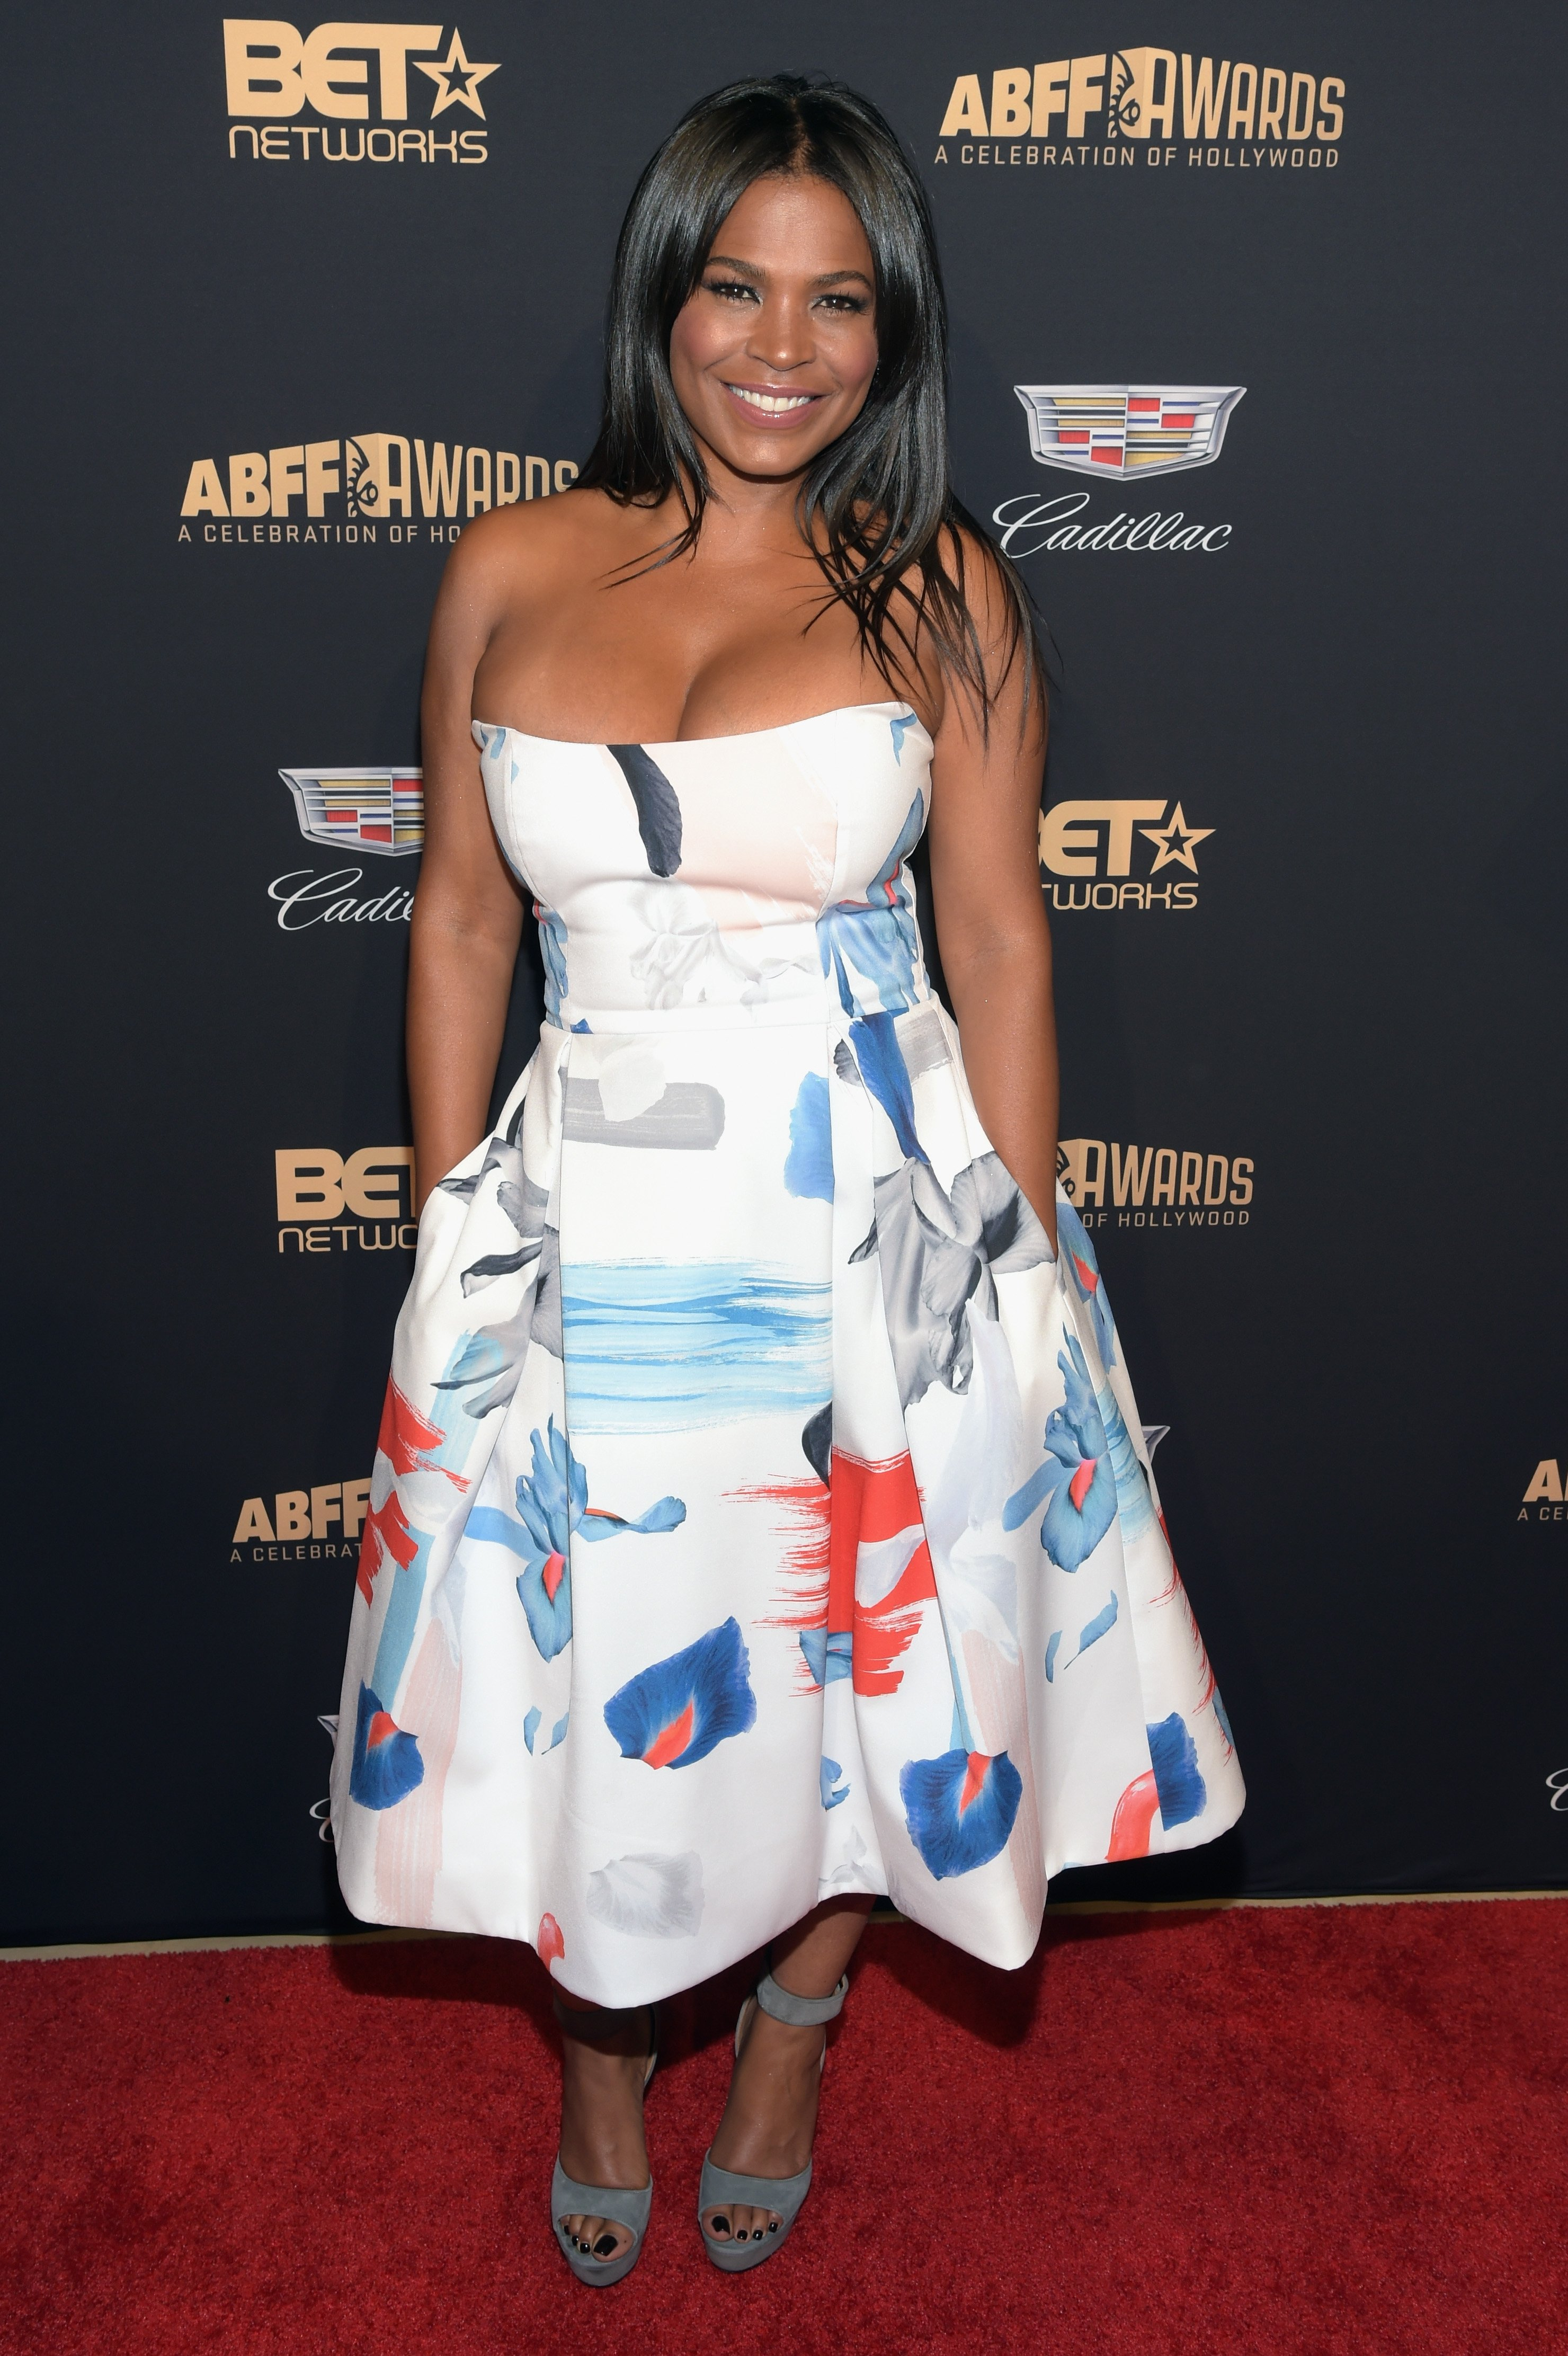 Nia Long at the 2016 ABFF Awards: A Celebration Of Hollywood on Feb. 21, 2016 in Beverly Hills, California | Photo: Getty Images